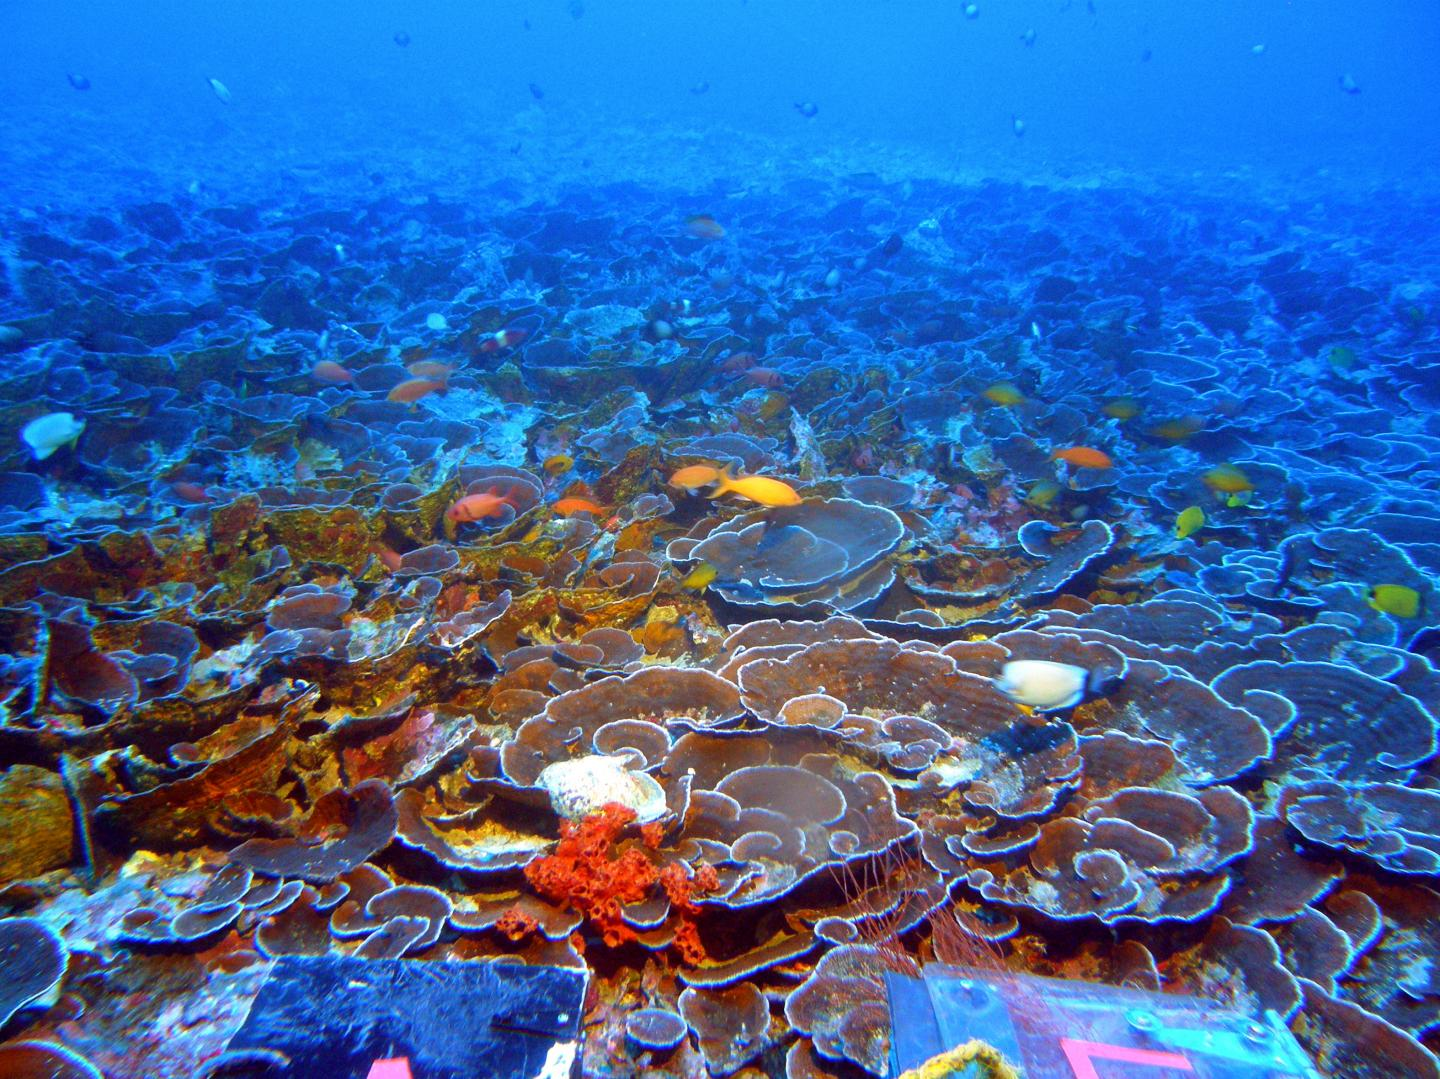 Mosophotic Coral Ecosystem at 70m